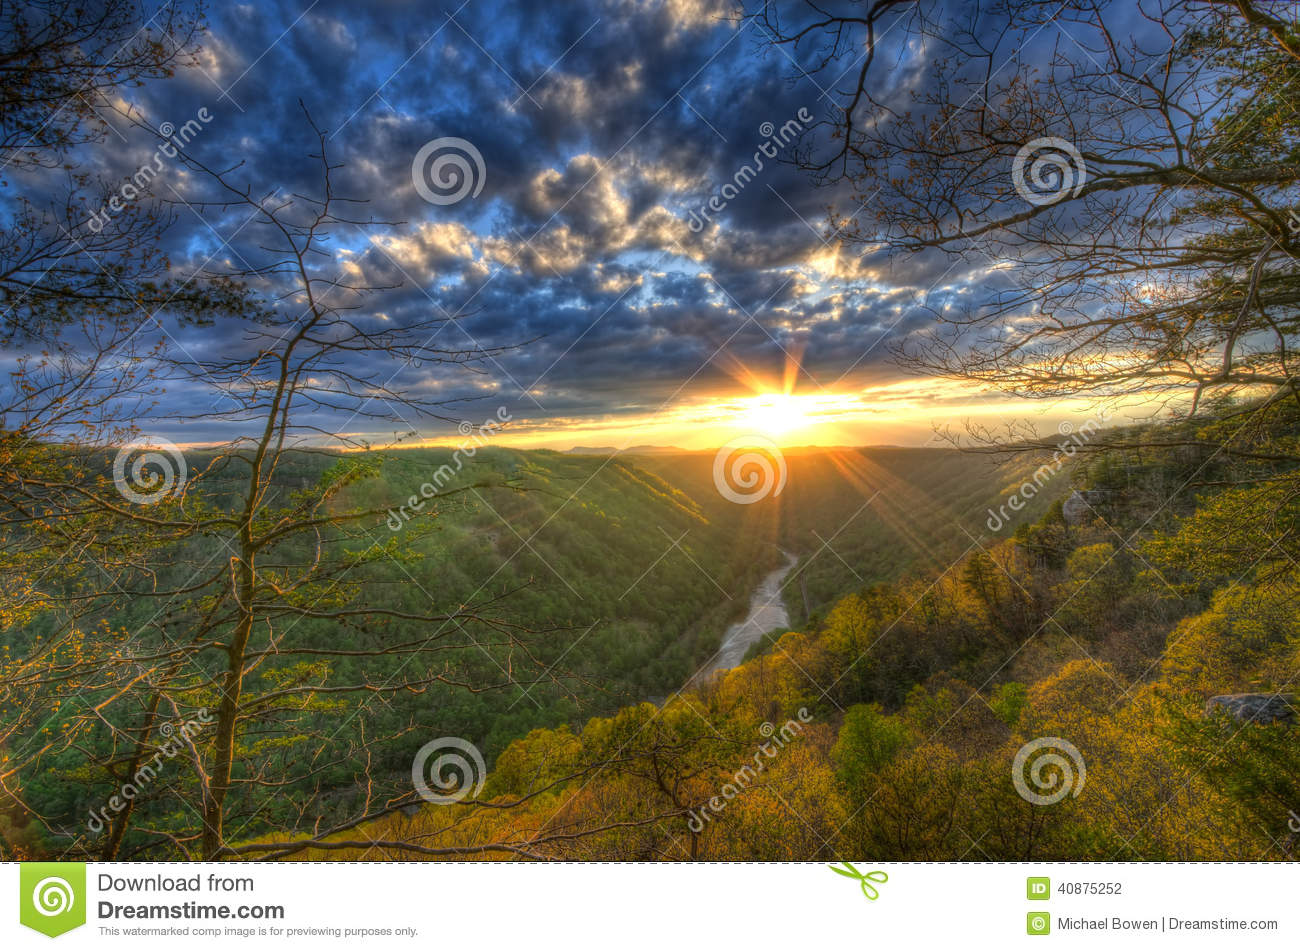 A Spring sunset on Beauty Mountain in West Virginia.